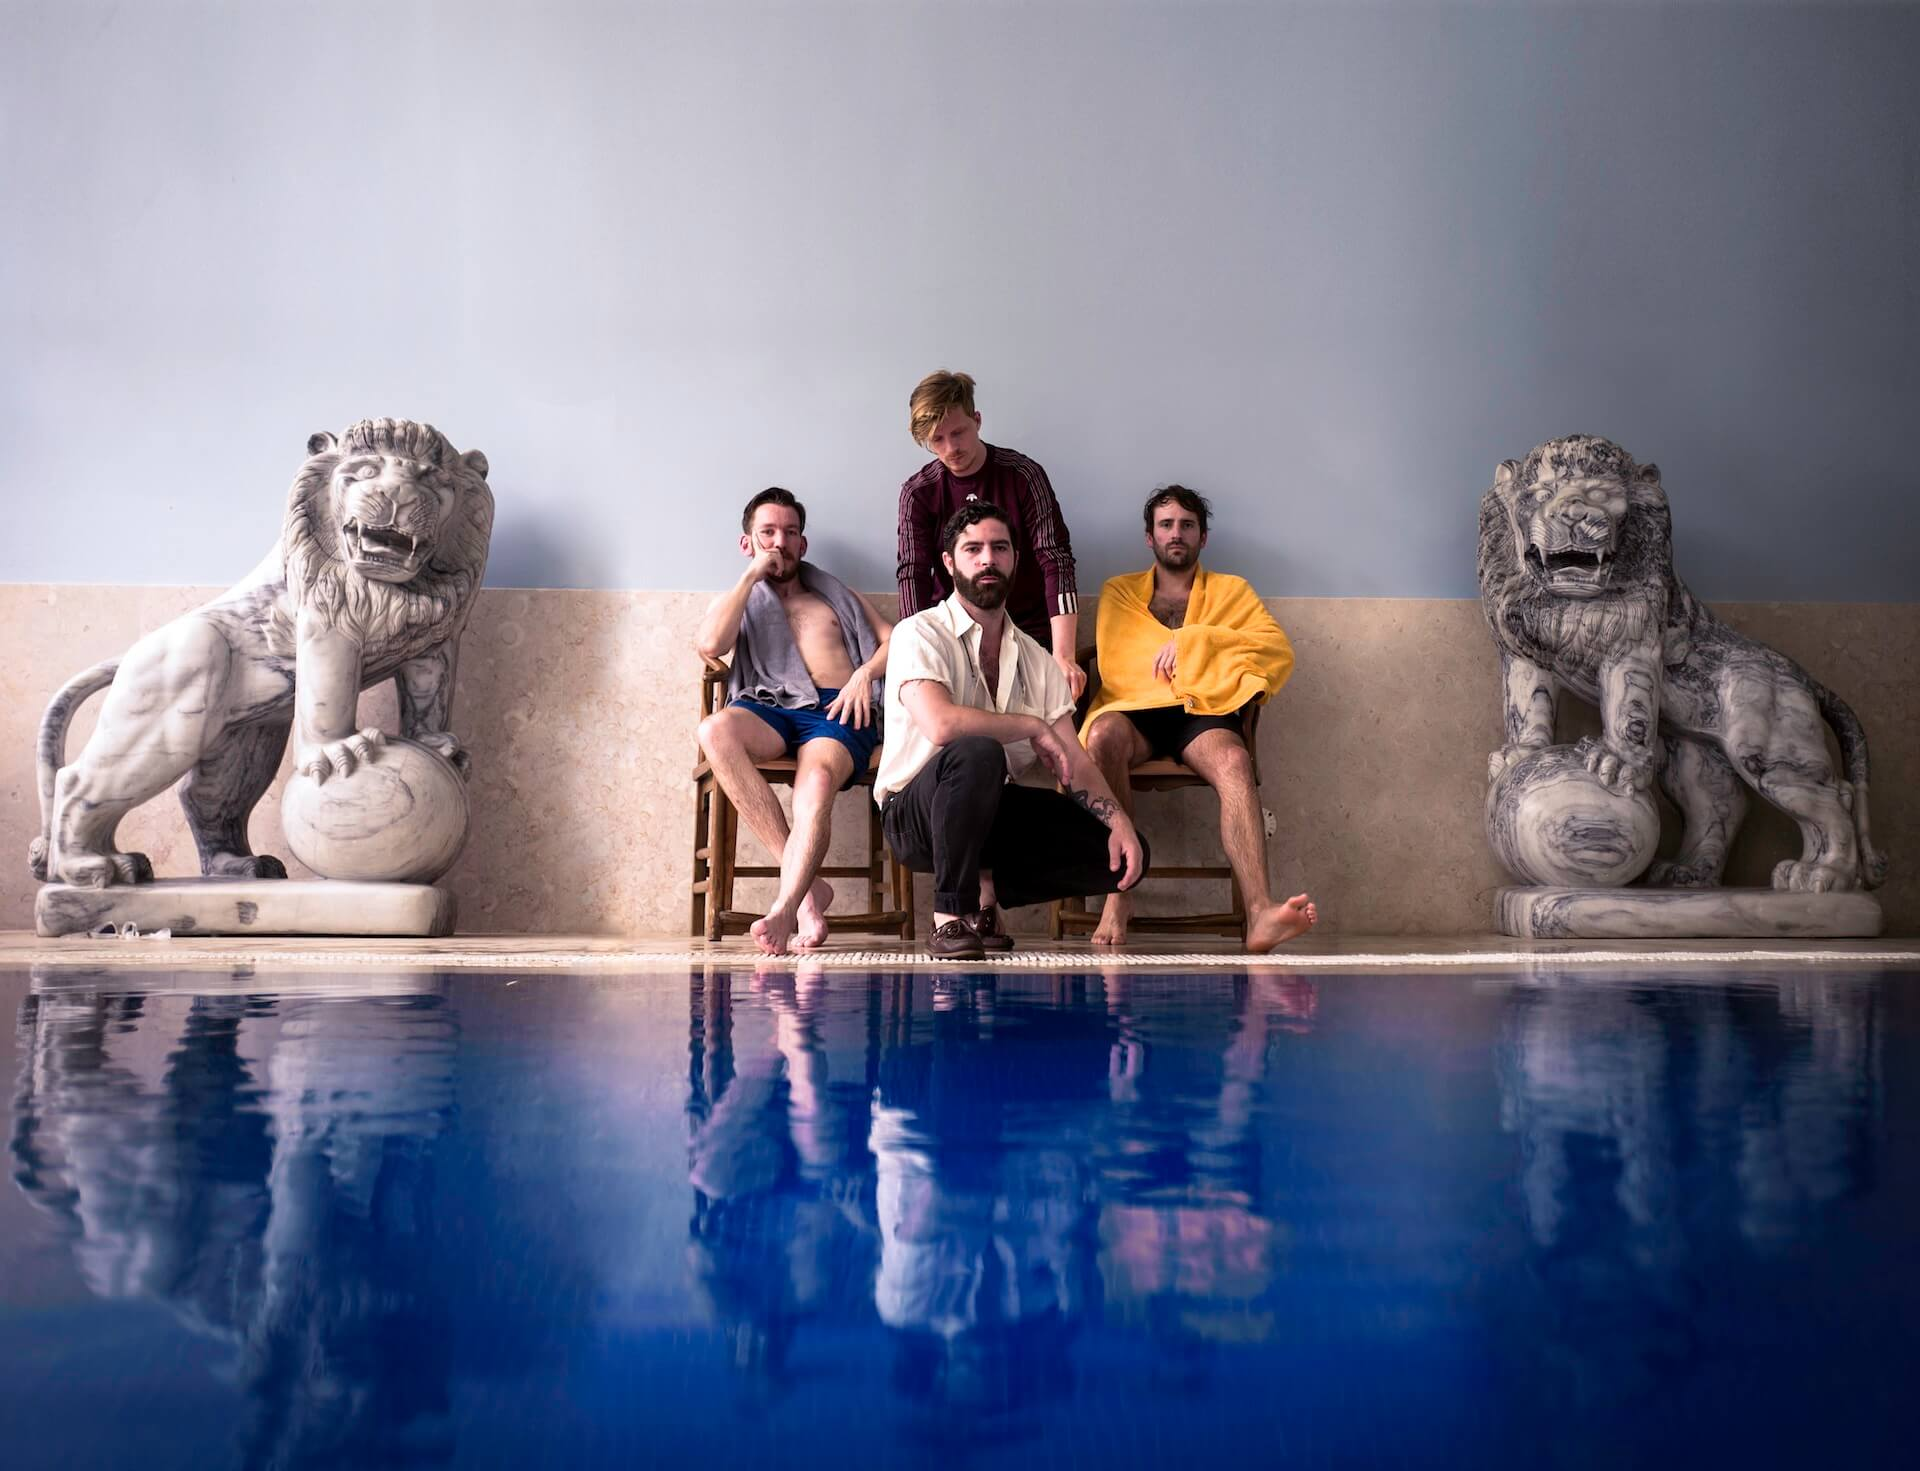 Foals珠玉の最新作『Everything Not Saved Will Be Lost Part 1』から紐解く「UKロックの雄」その軌跡 music190314_foals_2